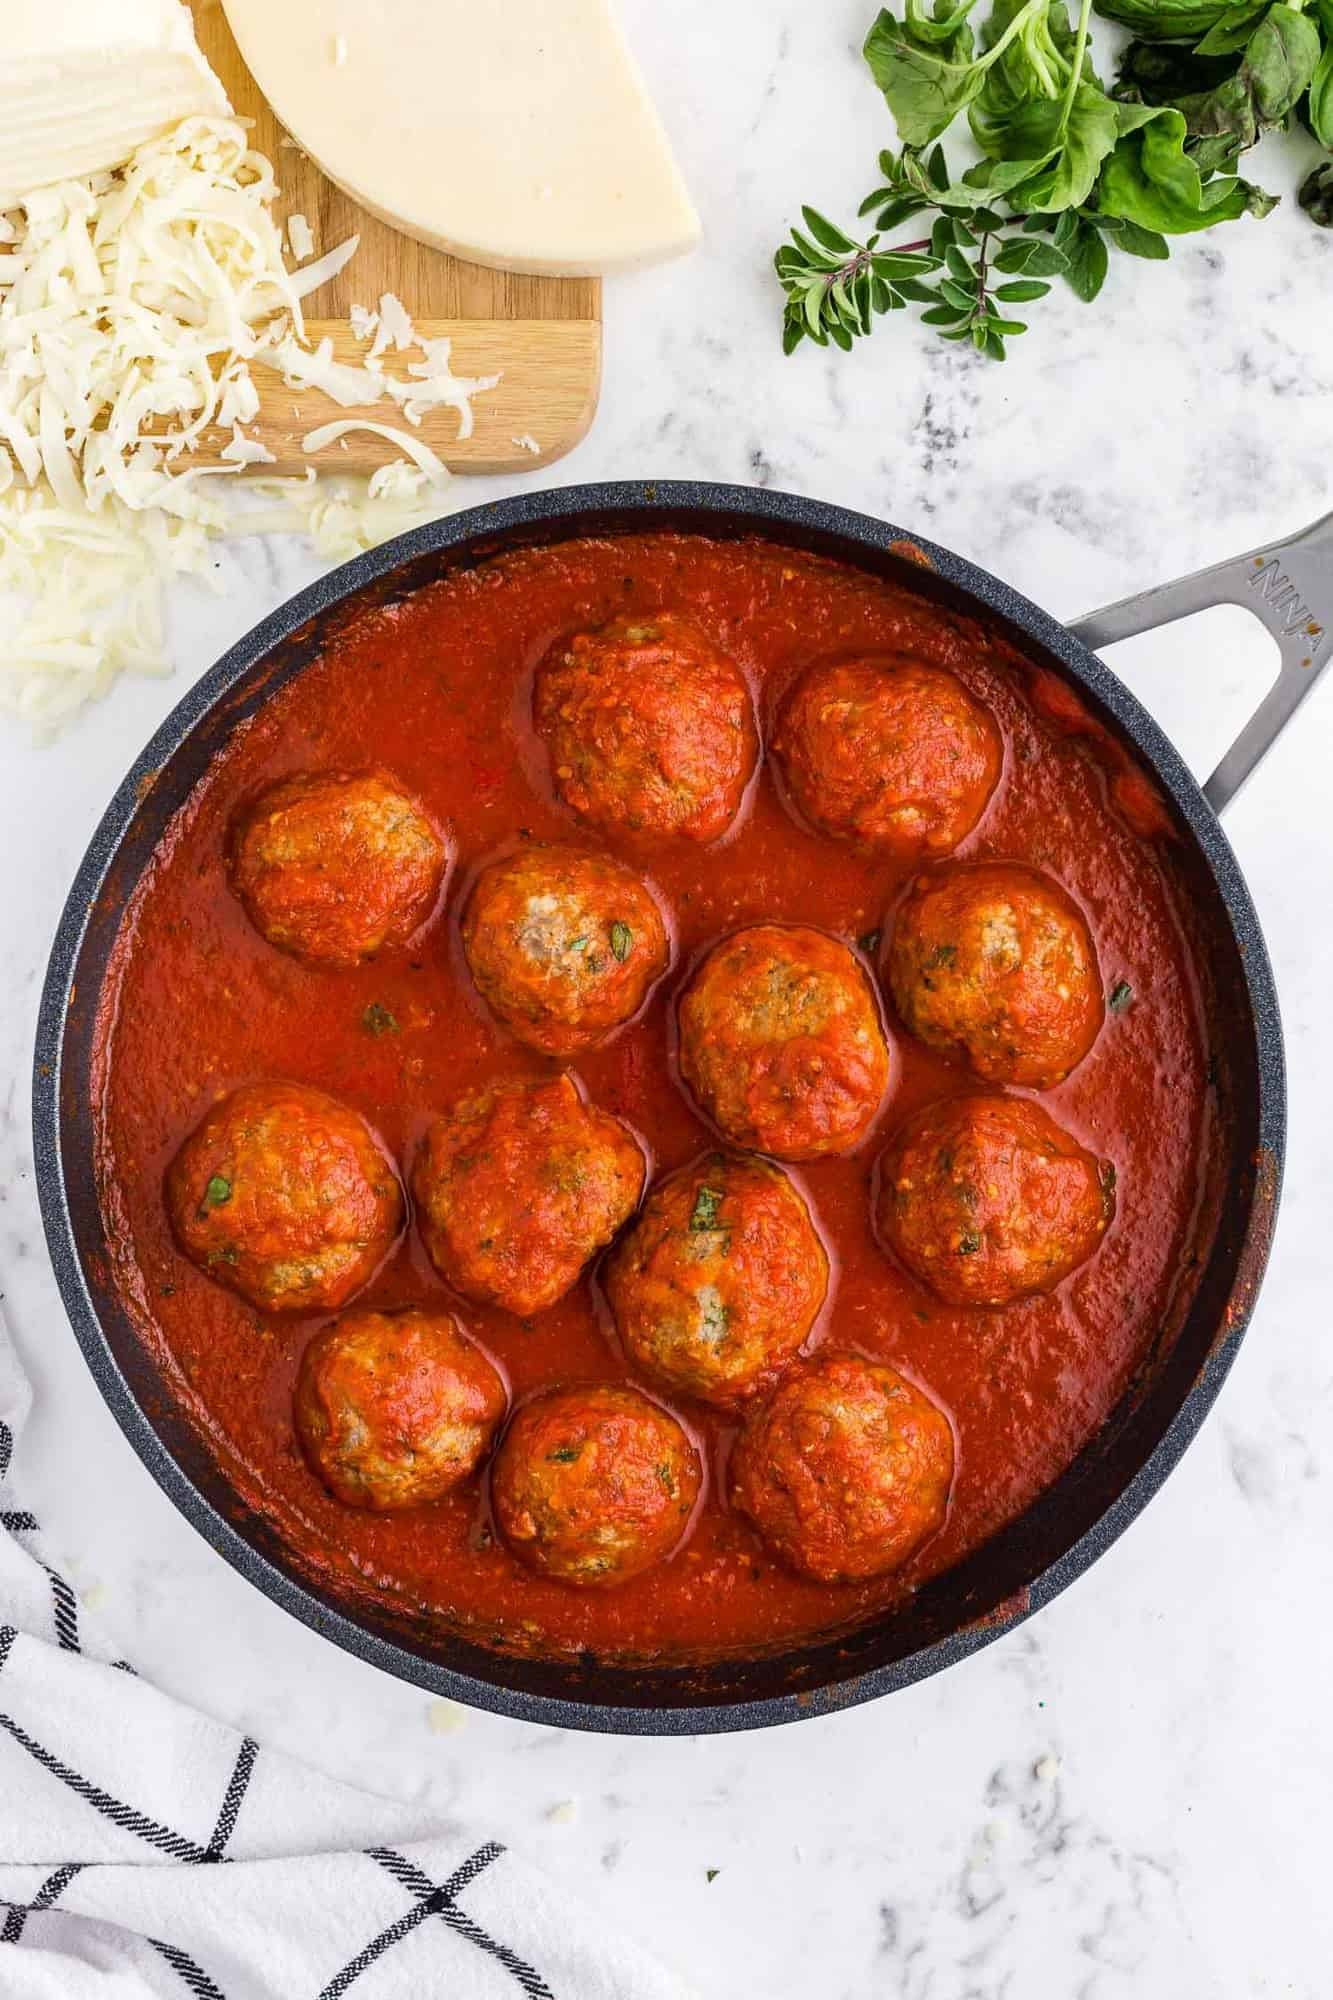 Meatballs and sauce in a pan.